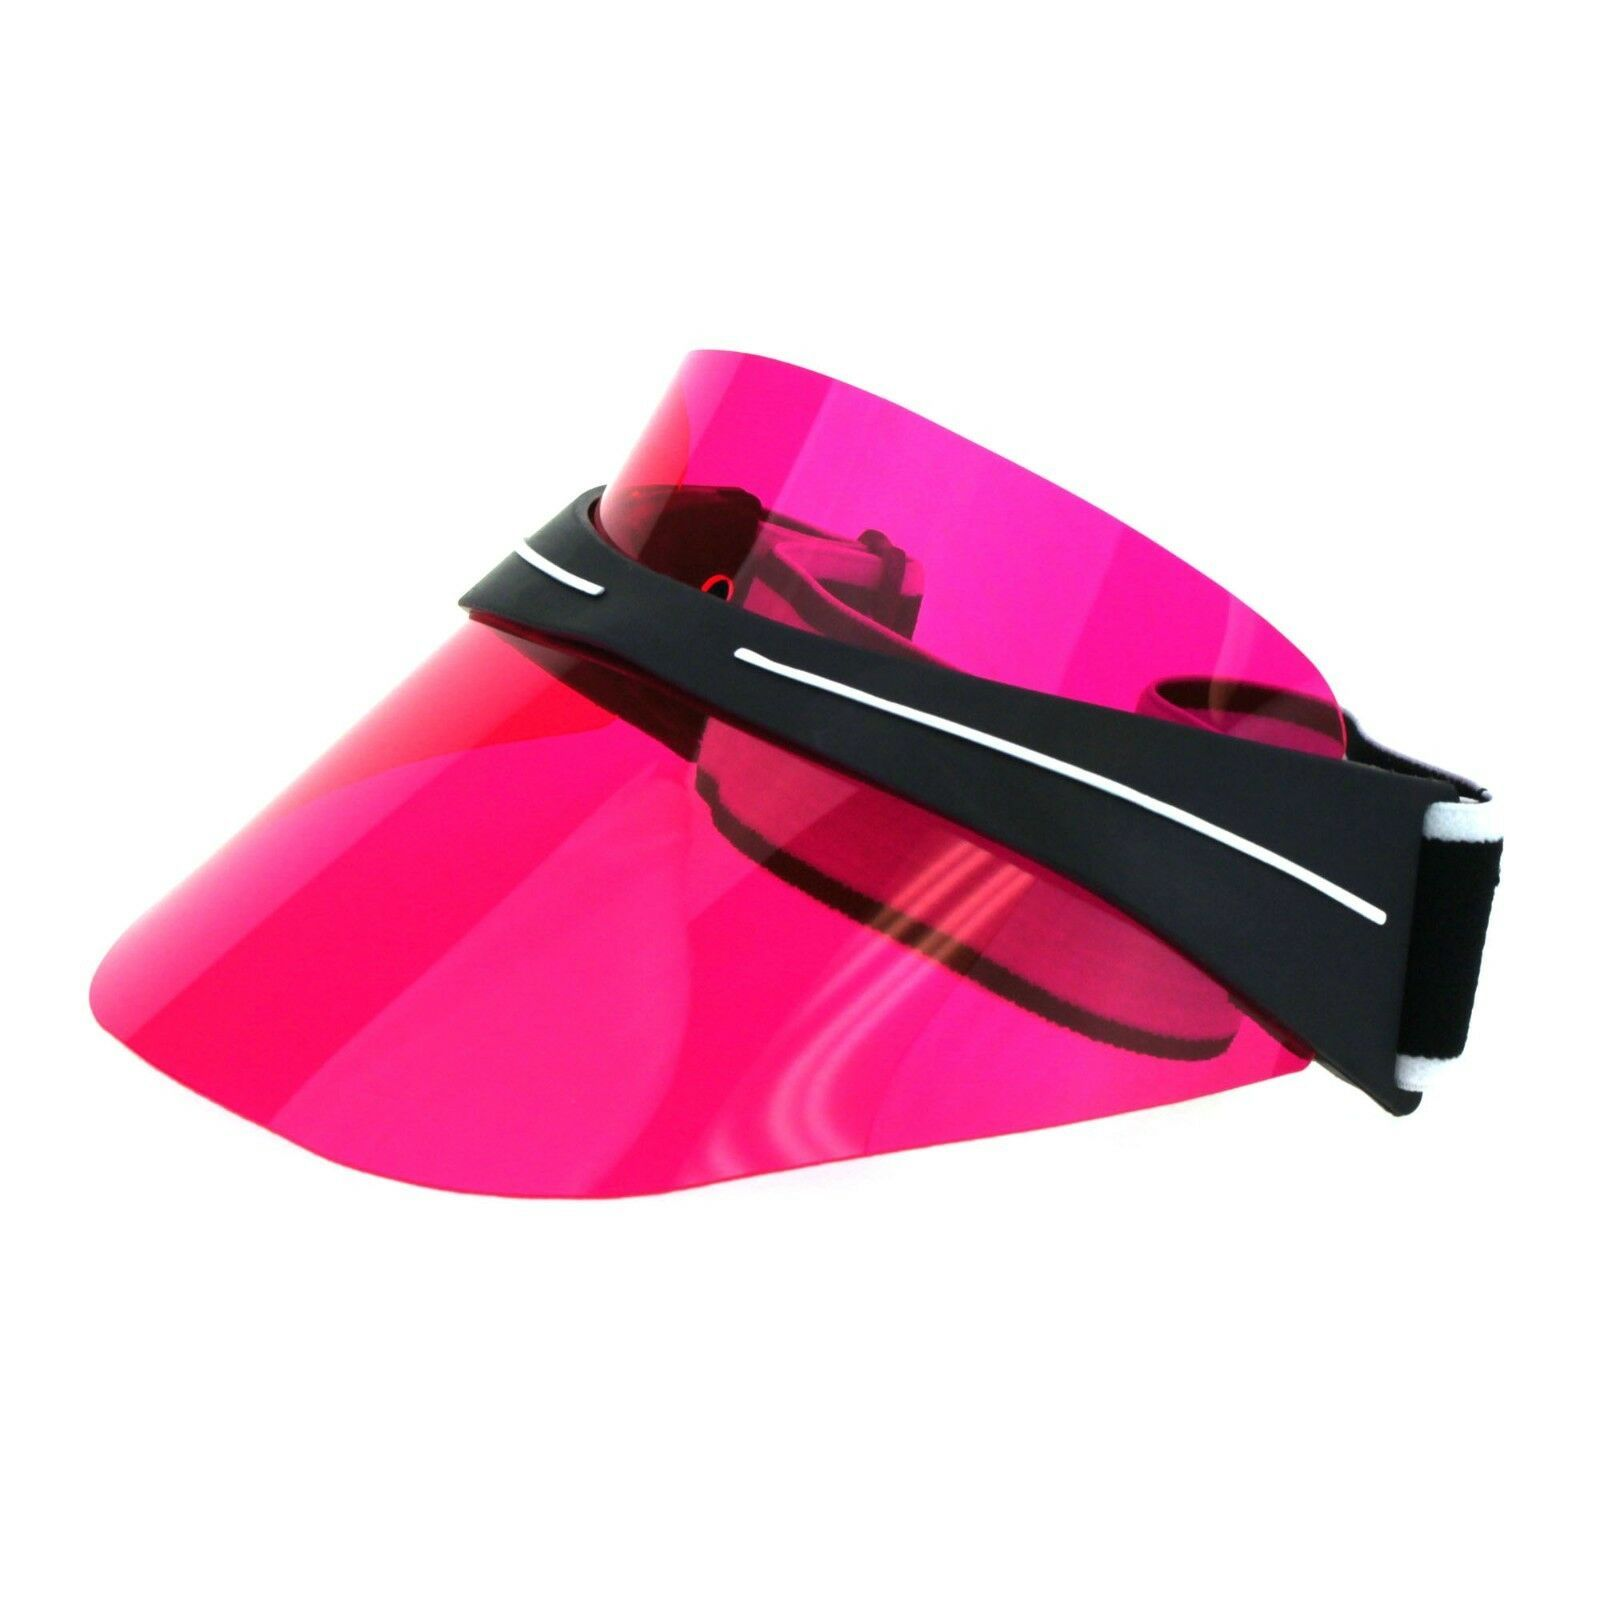 Tinted Sun Visor With Adjustable Straps Sun Cover Unisex